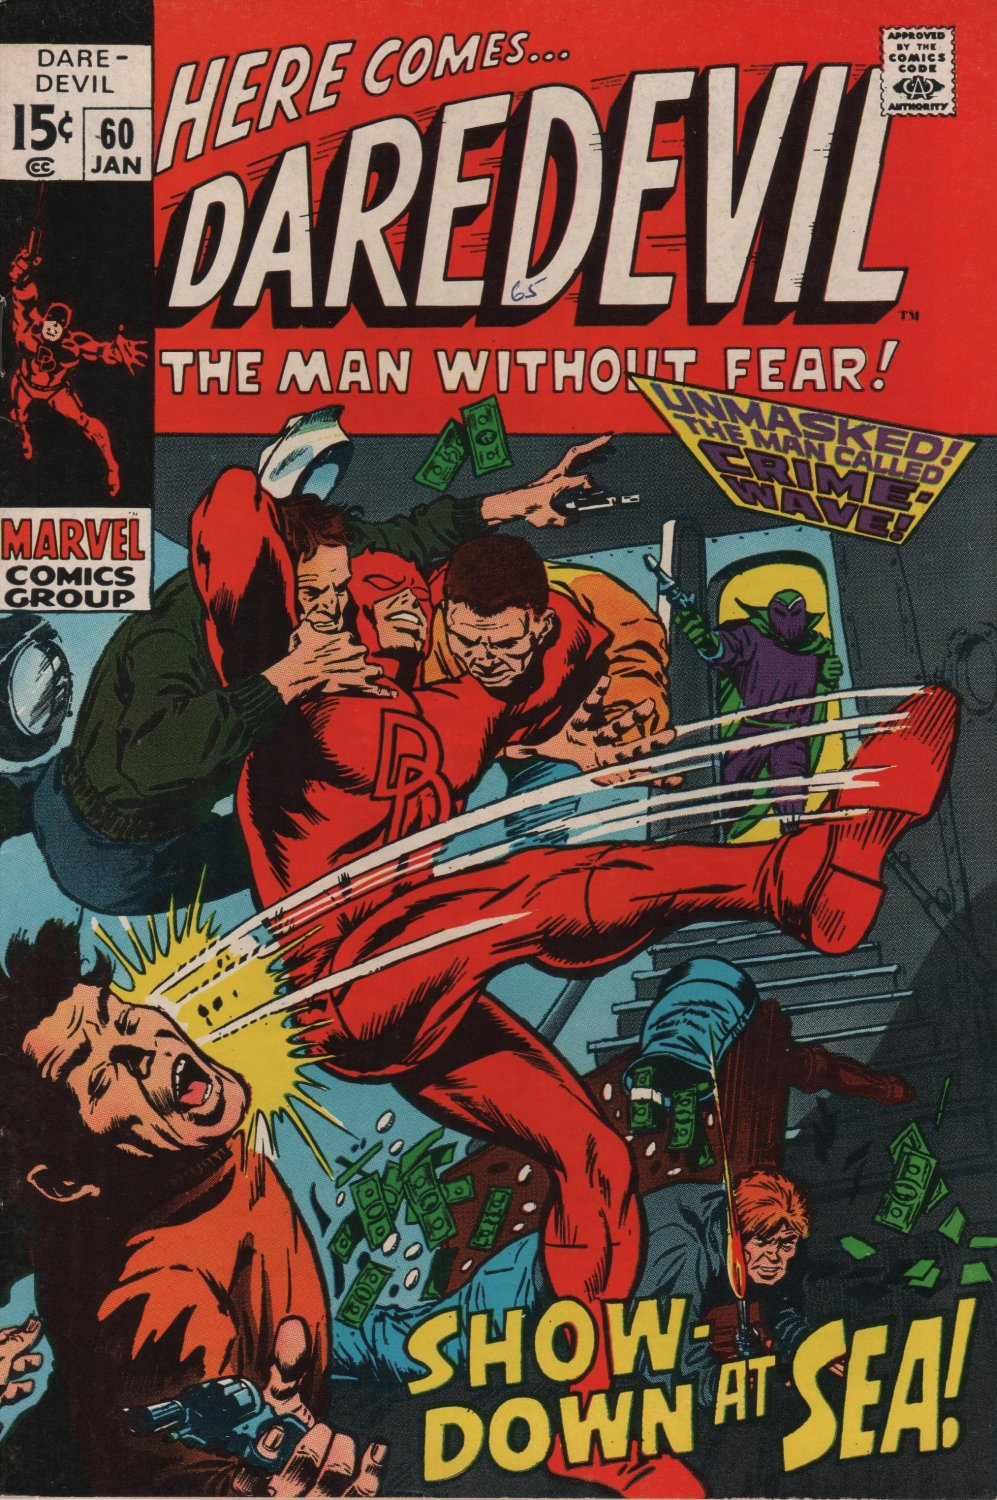 Daredevil #60 Show Down at Sea! c.1969